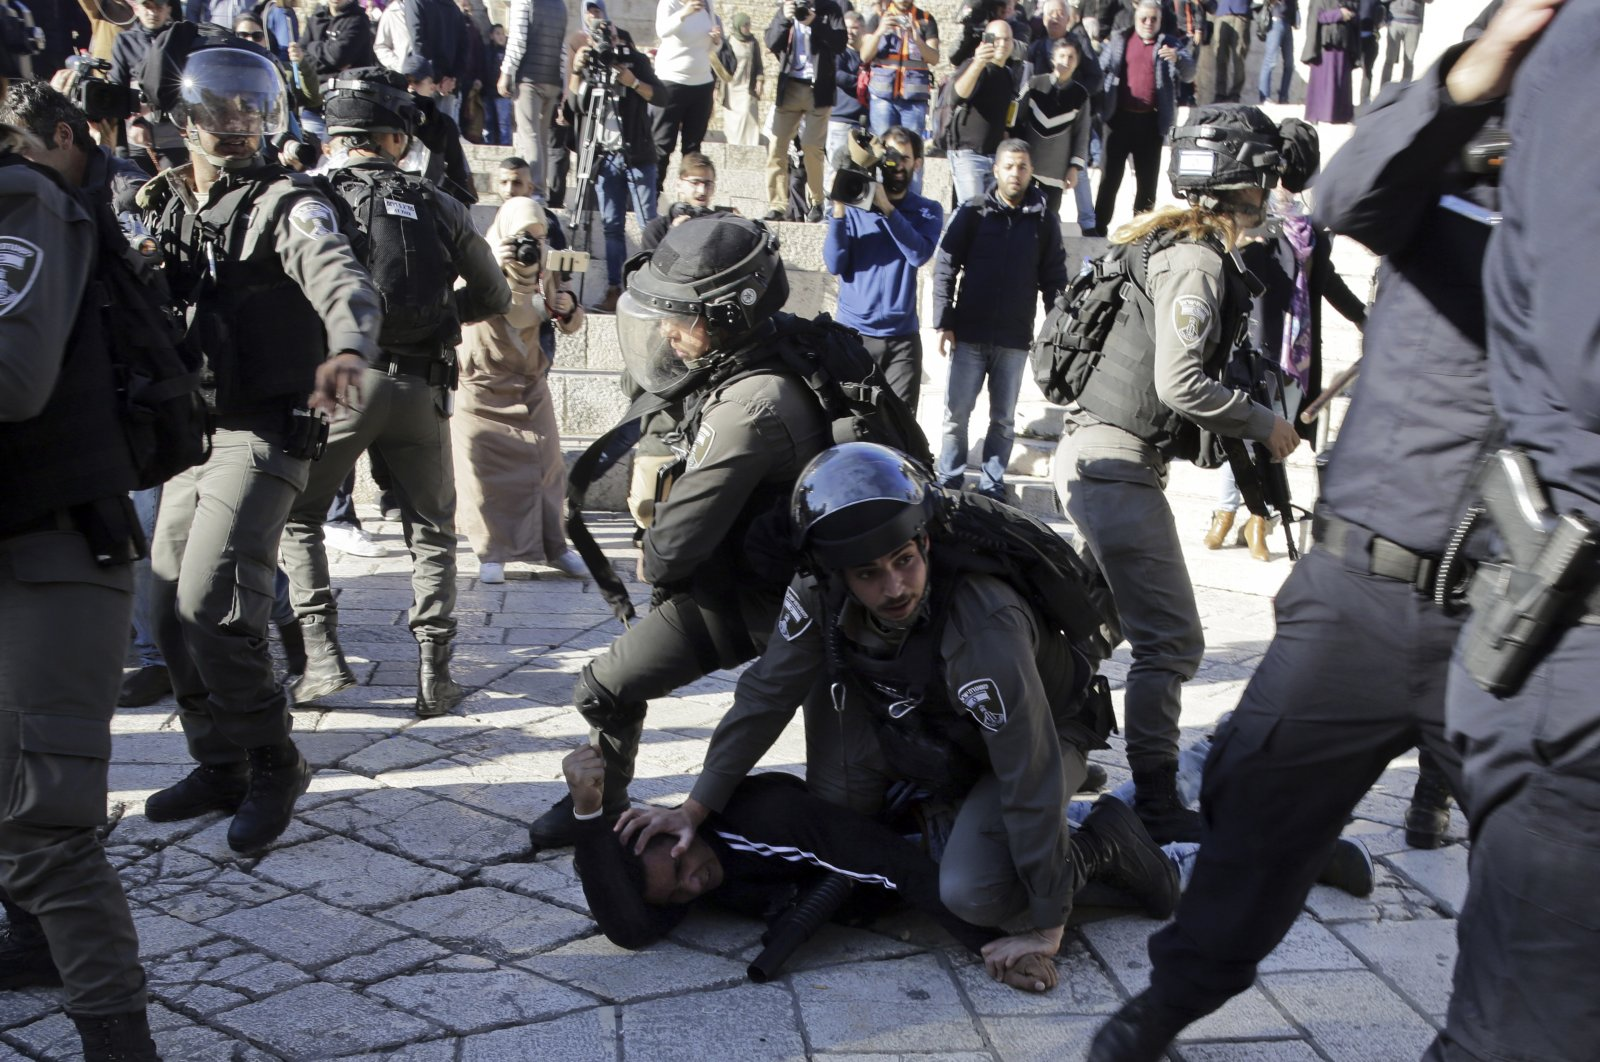 Israeli police officers detain a Palestinian during a protest in Jerusalem, Dec. 8,2017. (AP Photo)